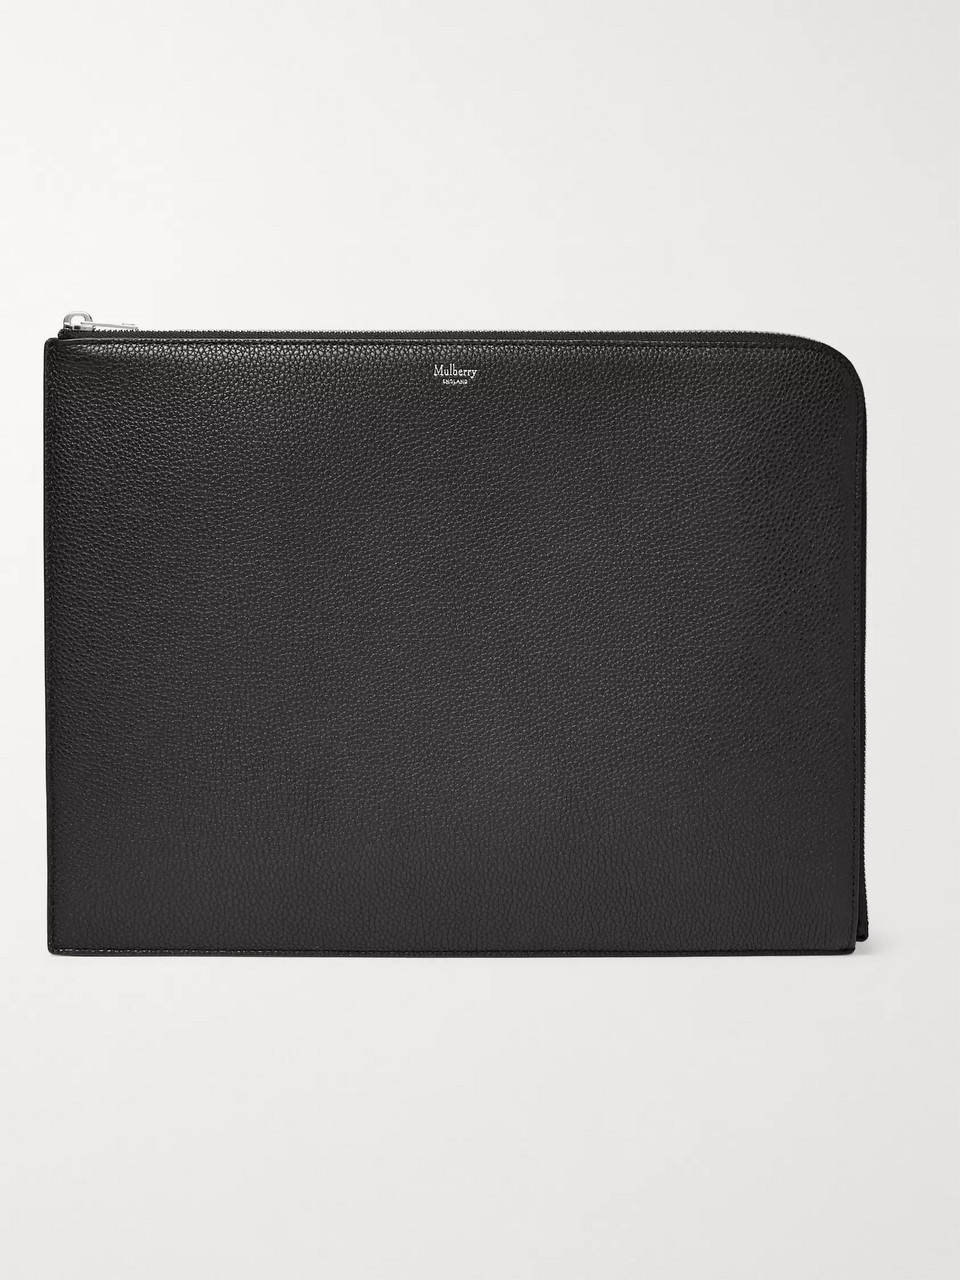 Mulberry Full-Grain Leather Pouch